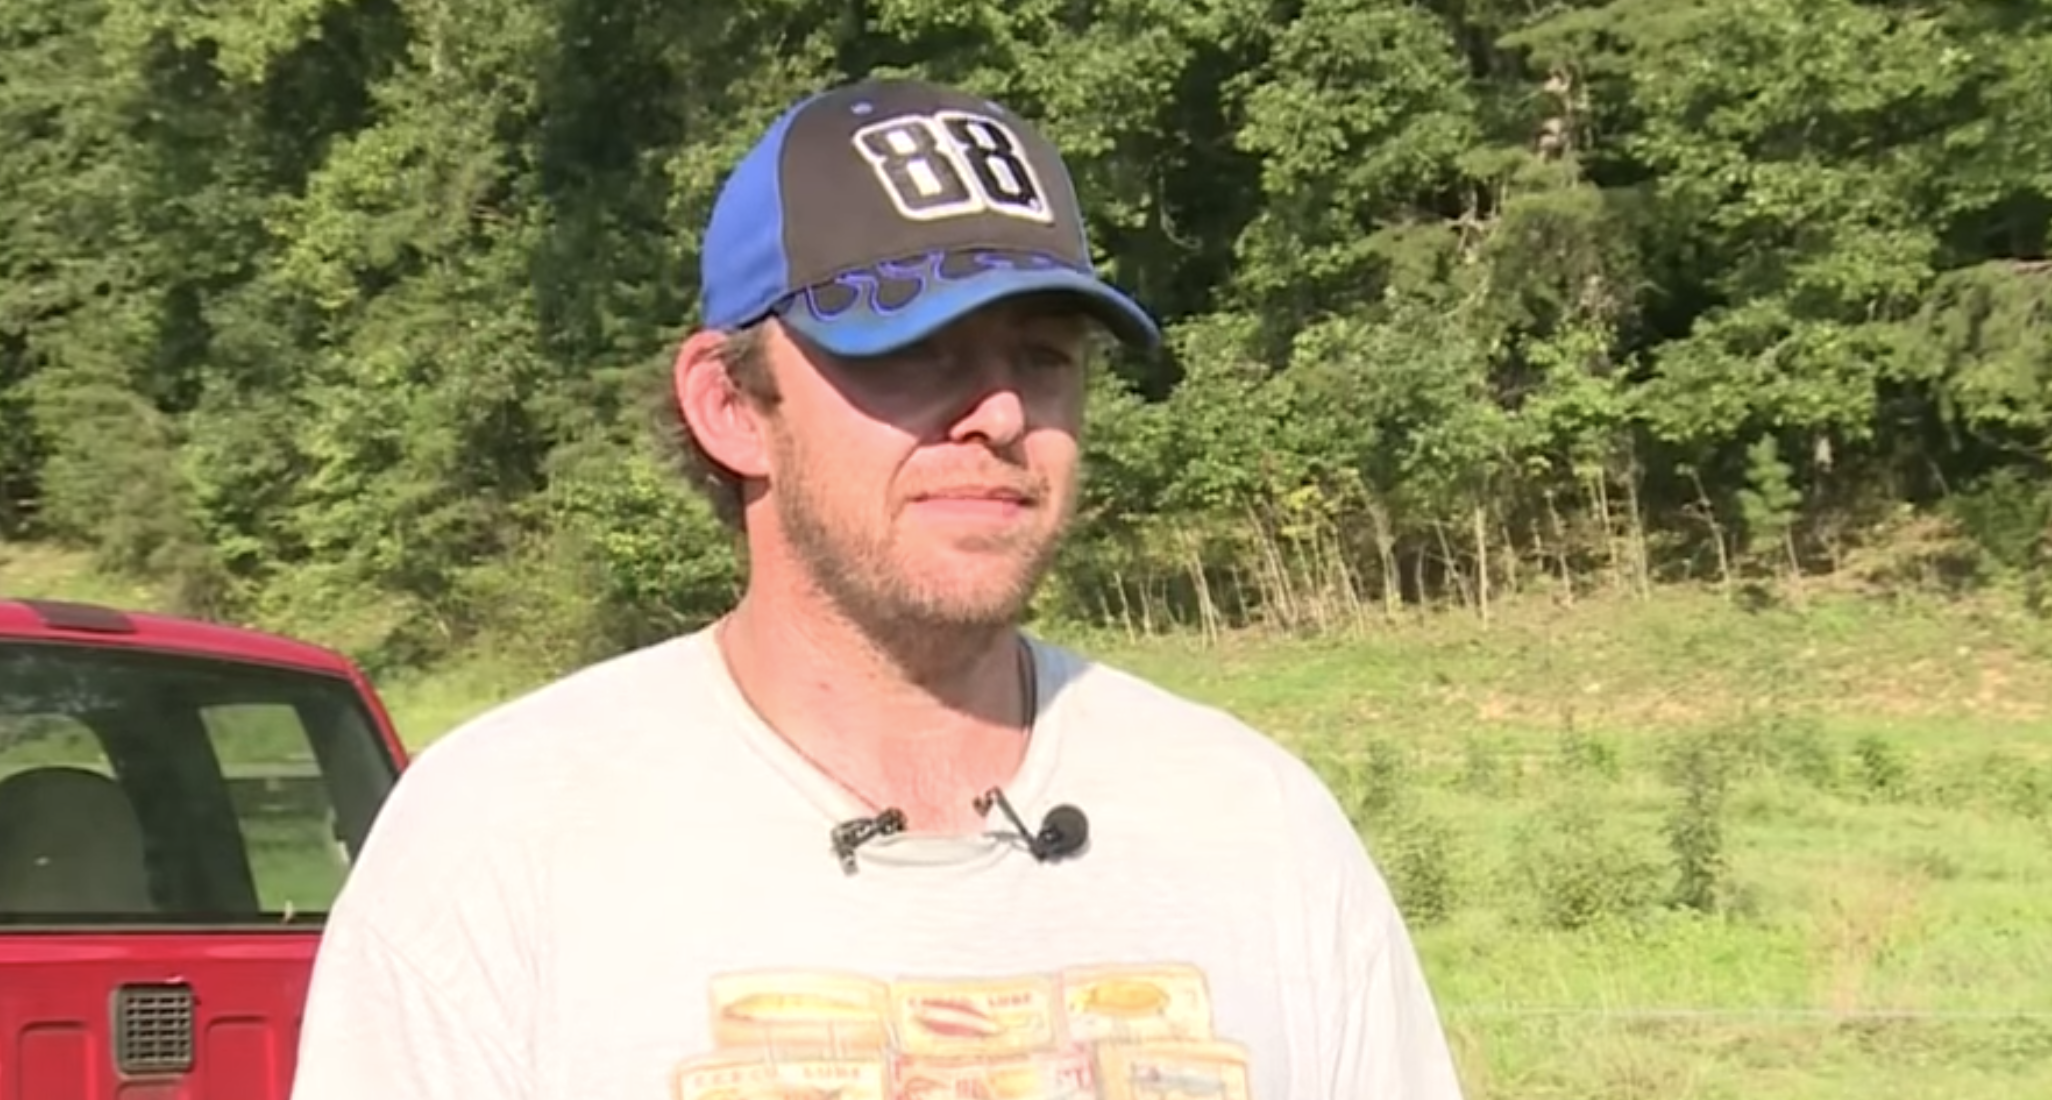 Kentucky Man Car Crash-Bee Attack News Interview